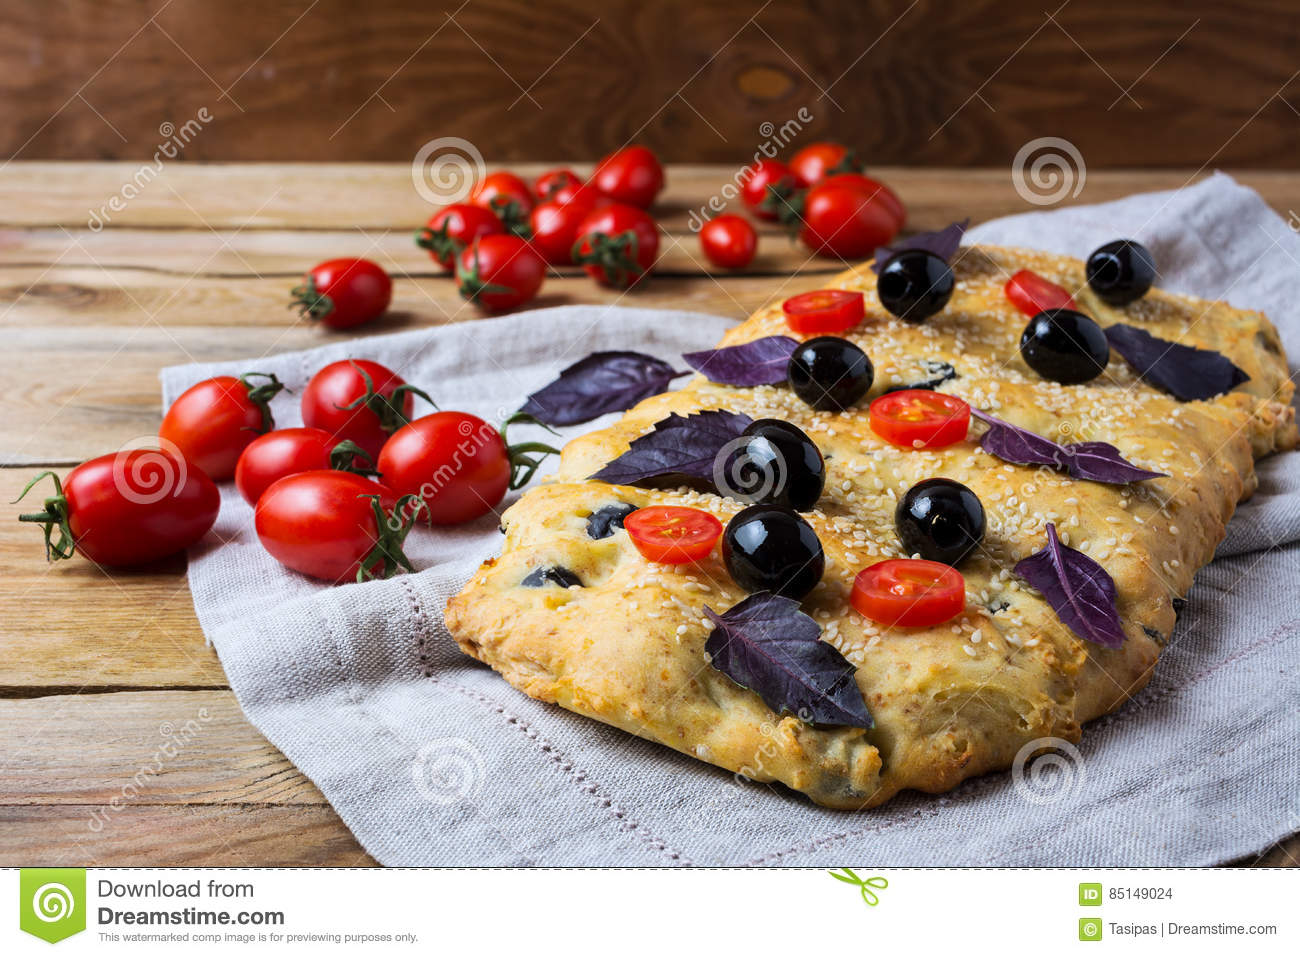 Focaccia with olive, cherry tomato and basil leaves